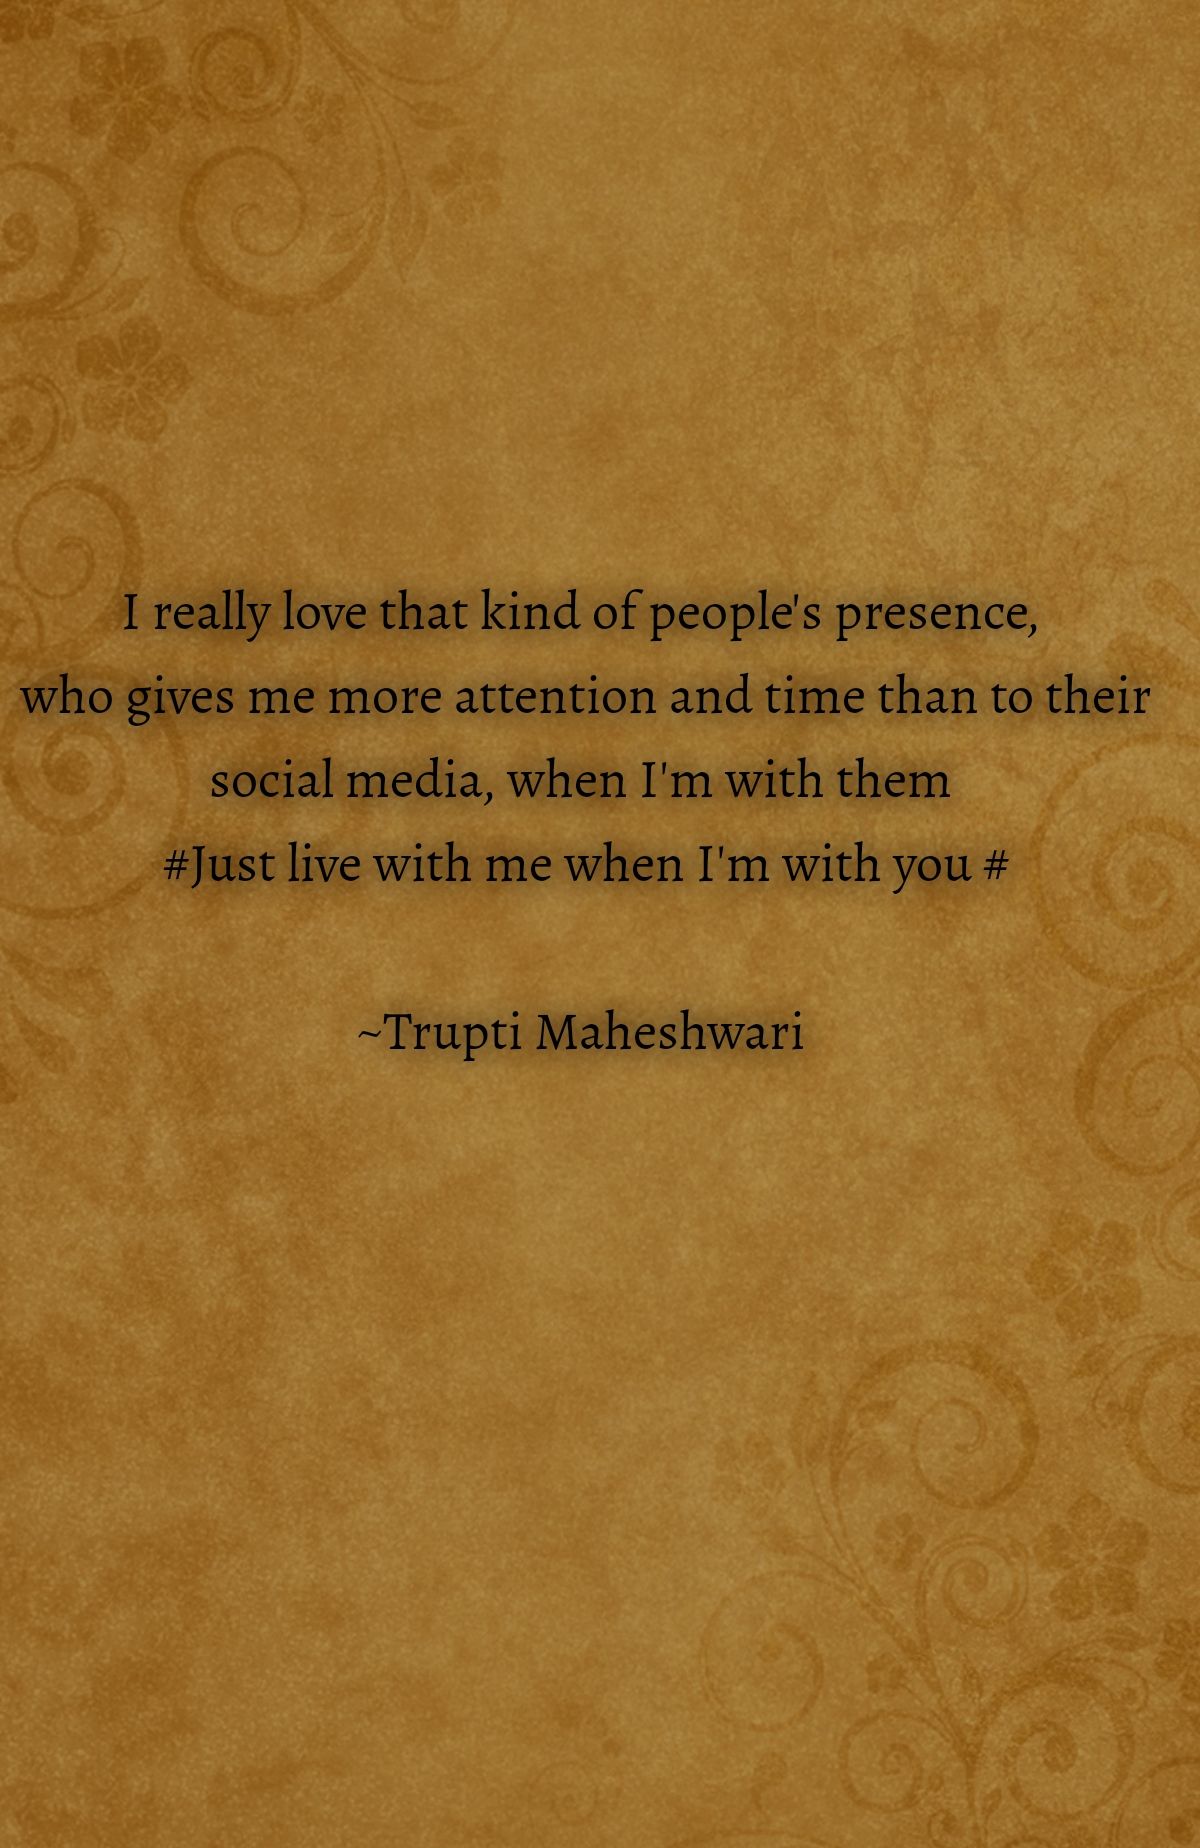 I really love that kind of people's presence,  who gives me more attention and time than to their social media, when I'm with them  #Just live with me when I'm with you #  ~Trupti Maheshwari